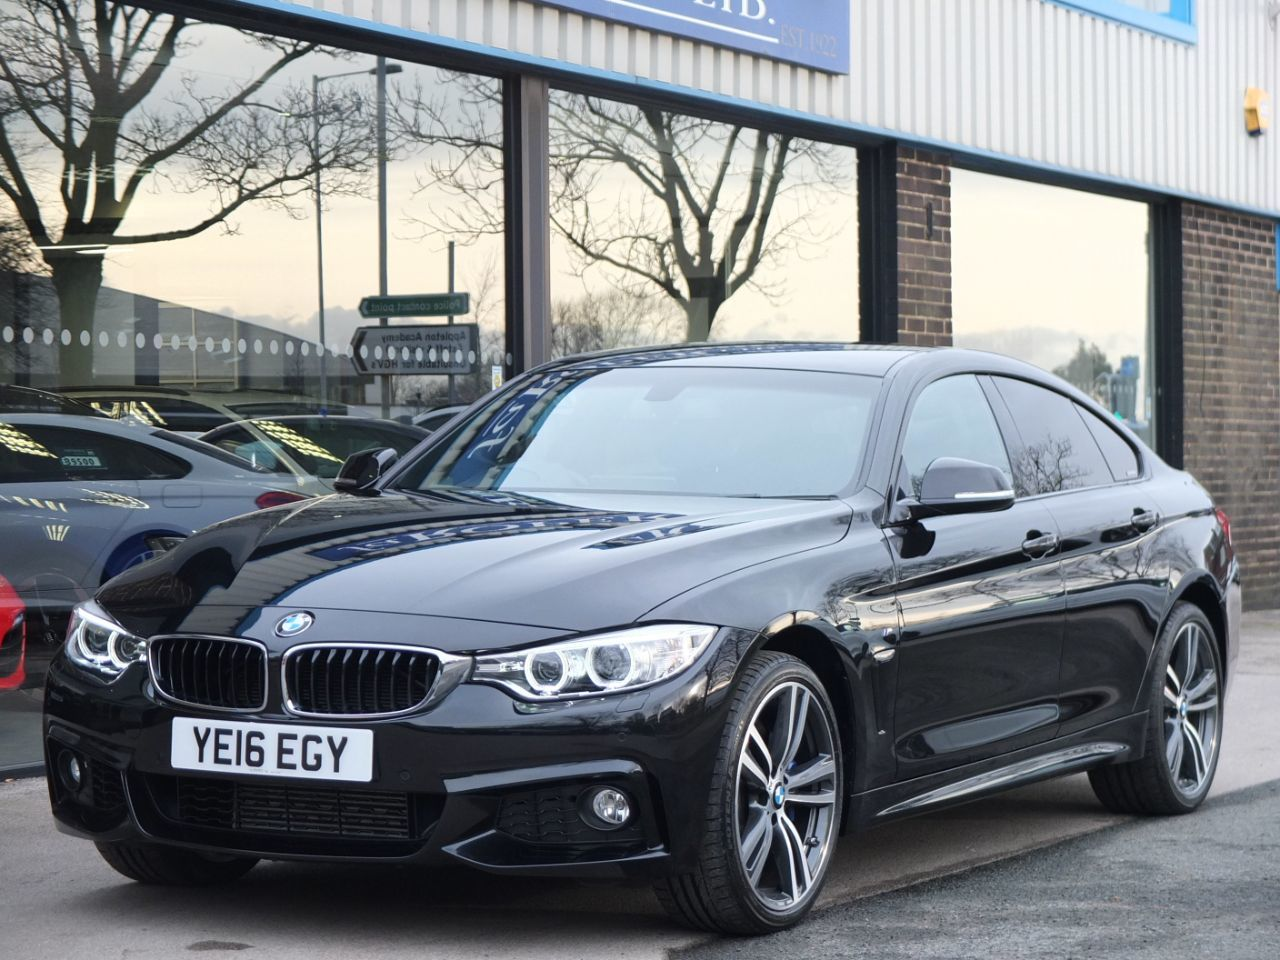 BMW 4 Series 3.0 435d xDrive Gran Coupe M Sport Plus Pack Auto Coupe Diesel Black Sapphire MetallicBMW 4 Series 3.0 435d xDrive Gran Coupe M Sport Plus Pack Auto Coupe Diesel Black Sapphire Metallic at fa Roper Ltd Bradford